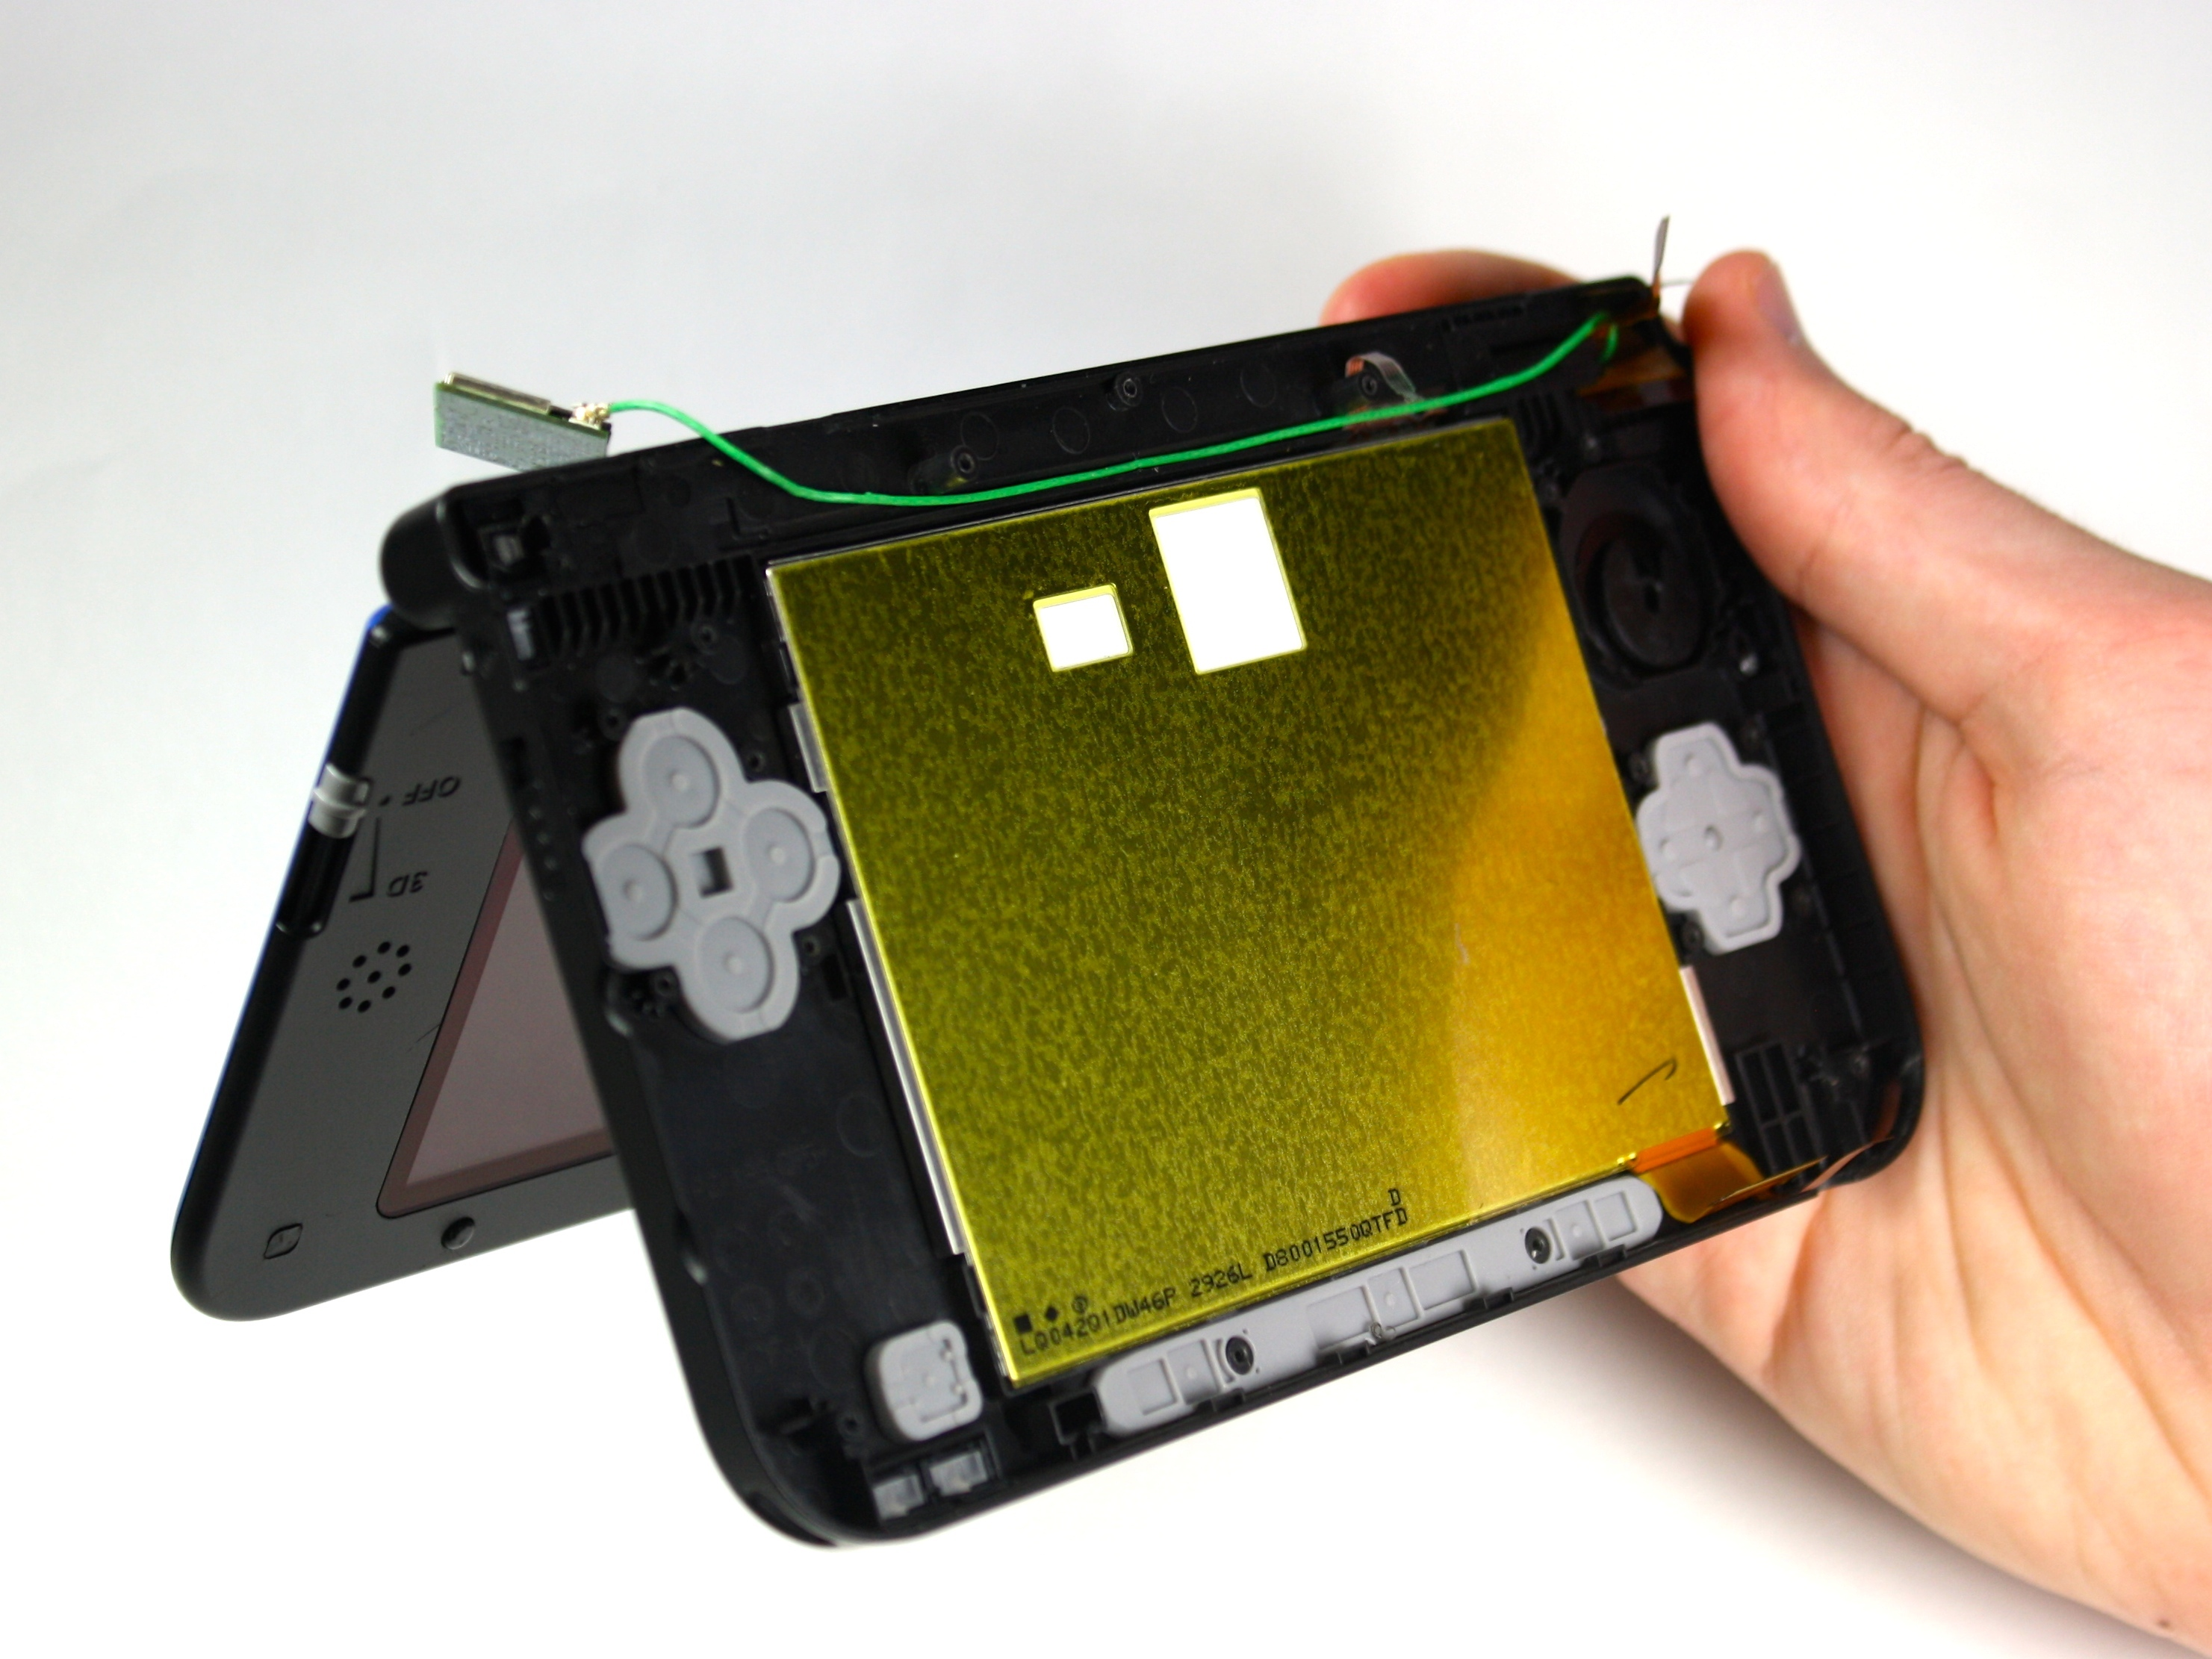 Nintendo 3ds Xl Touchscreen Replacement Ifixit Repair Guide